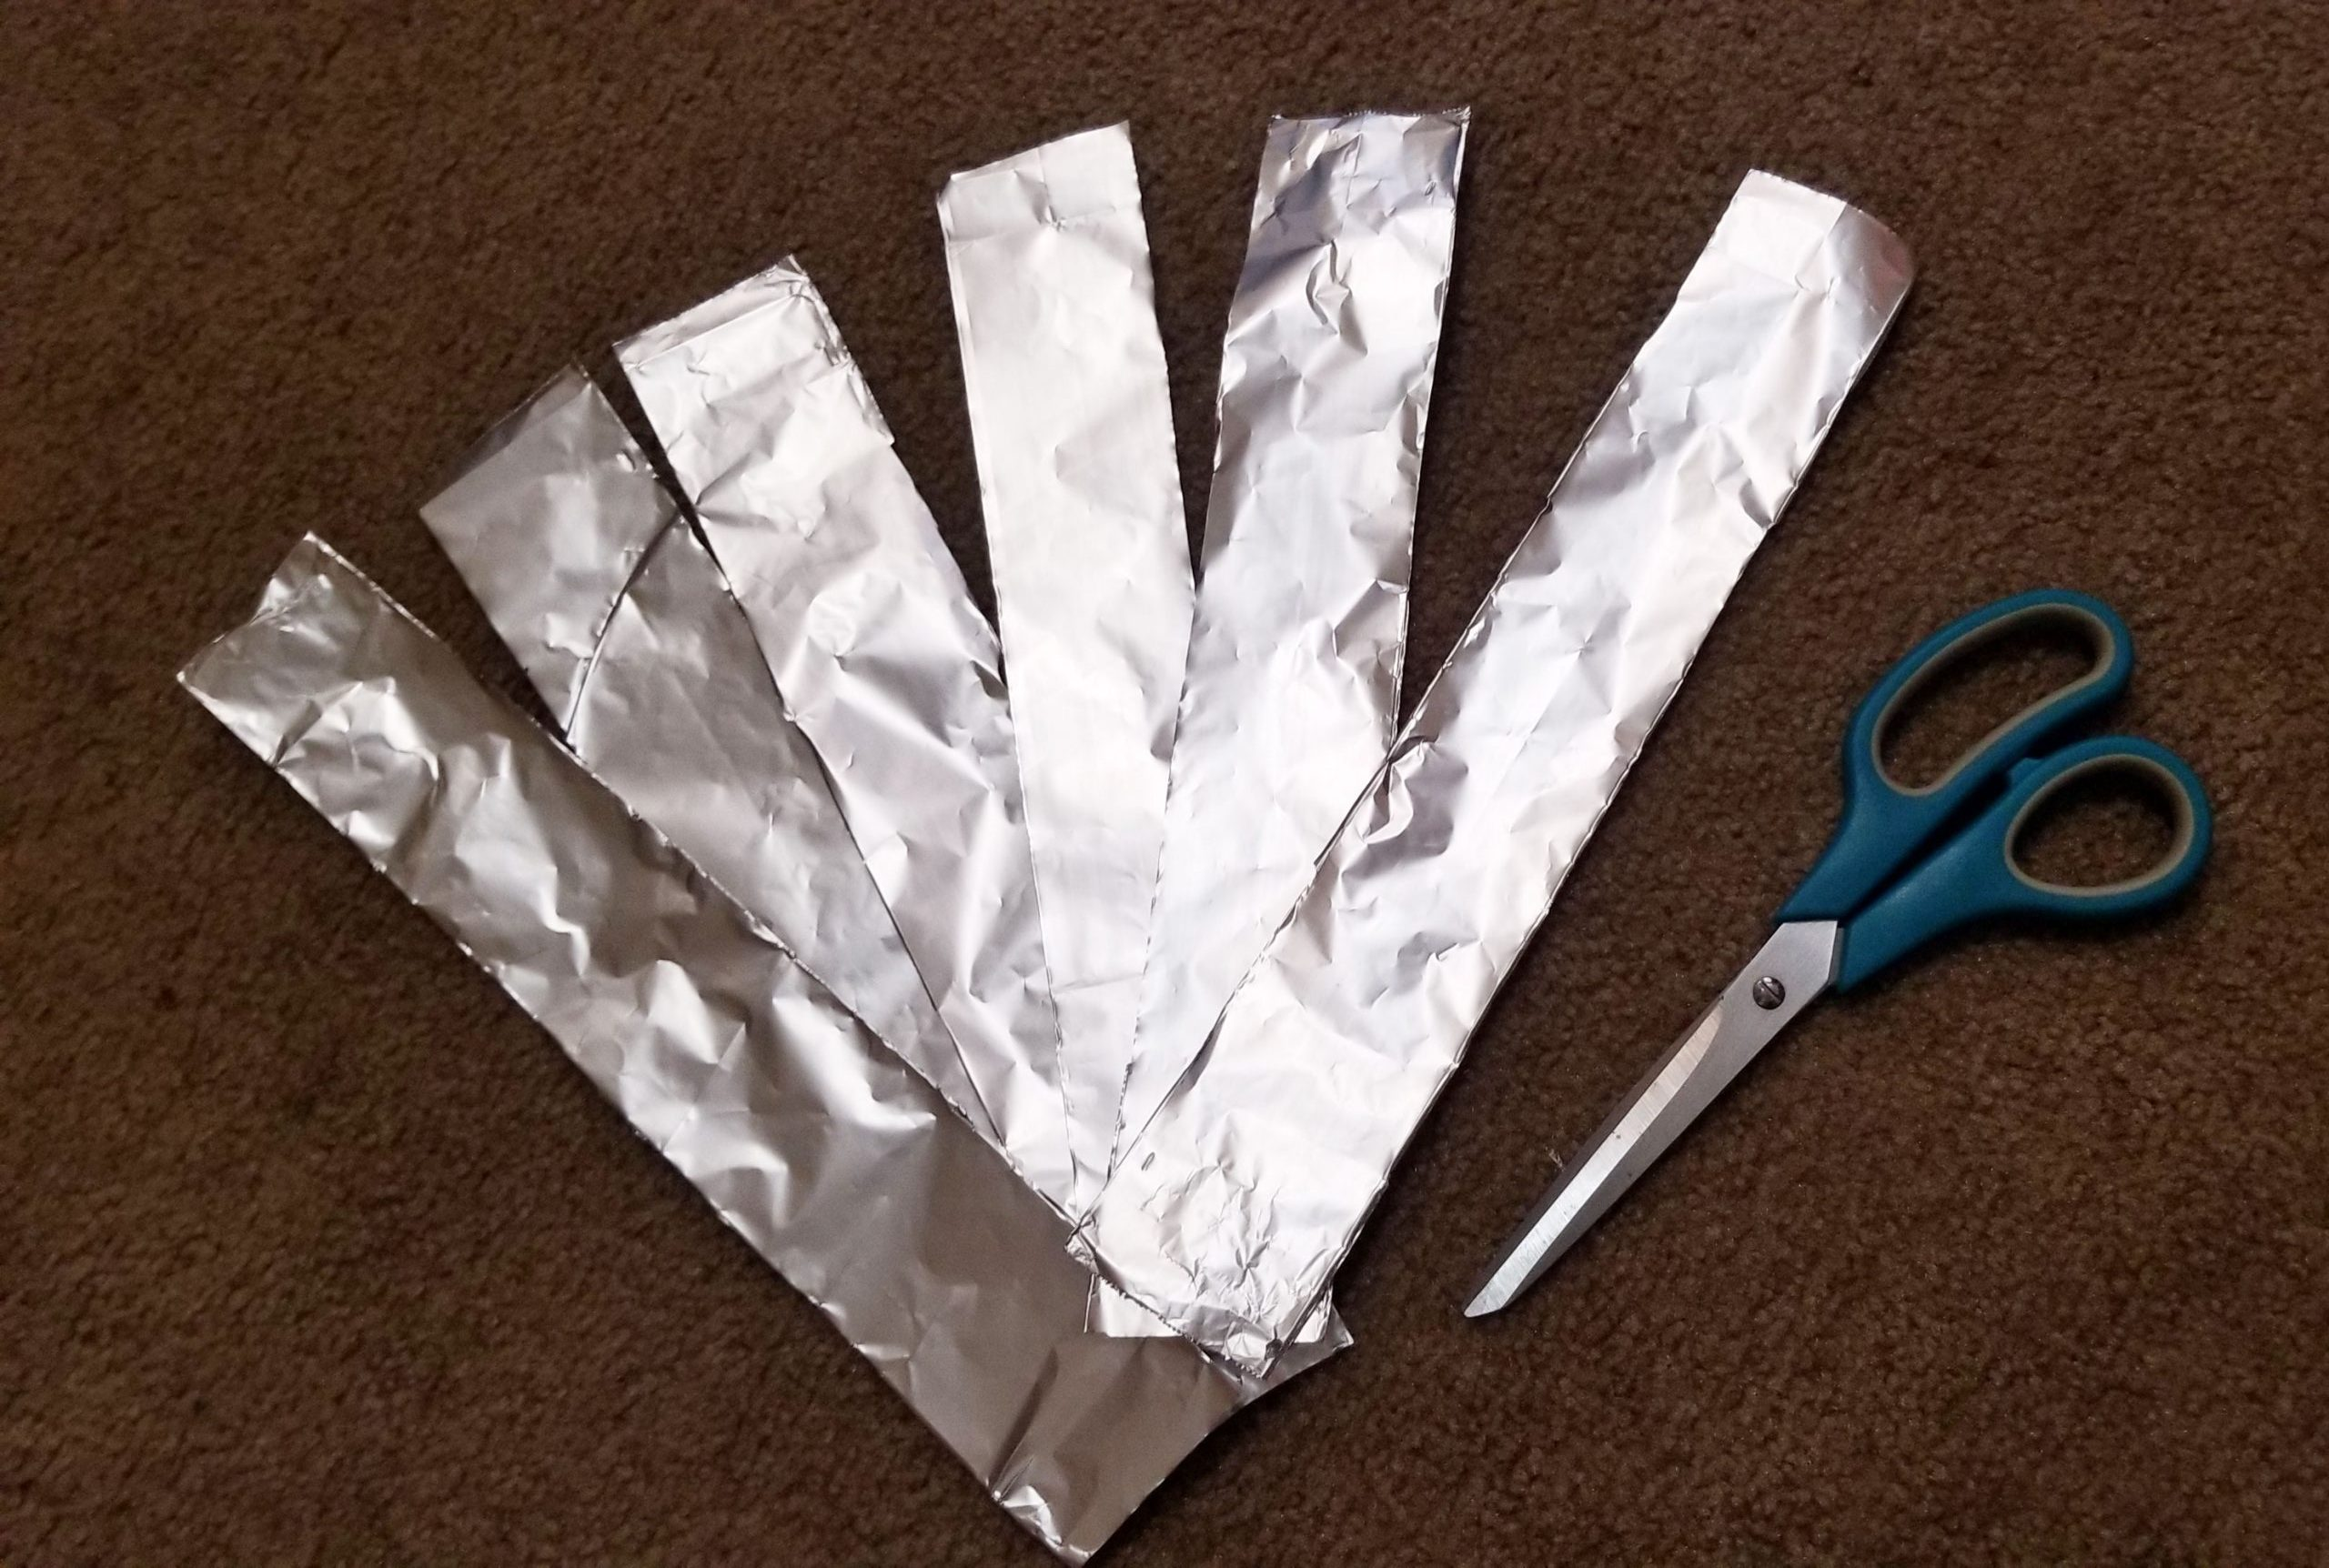 Aluminum foil cut into thin strips.